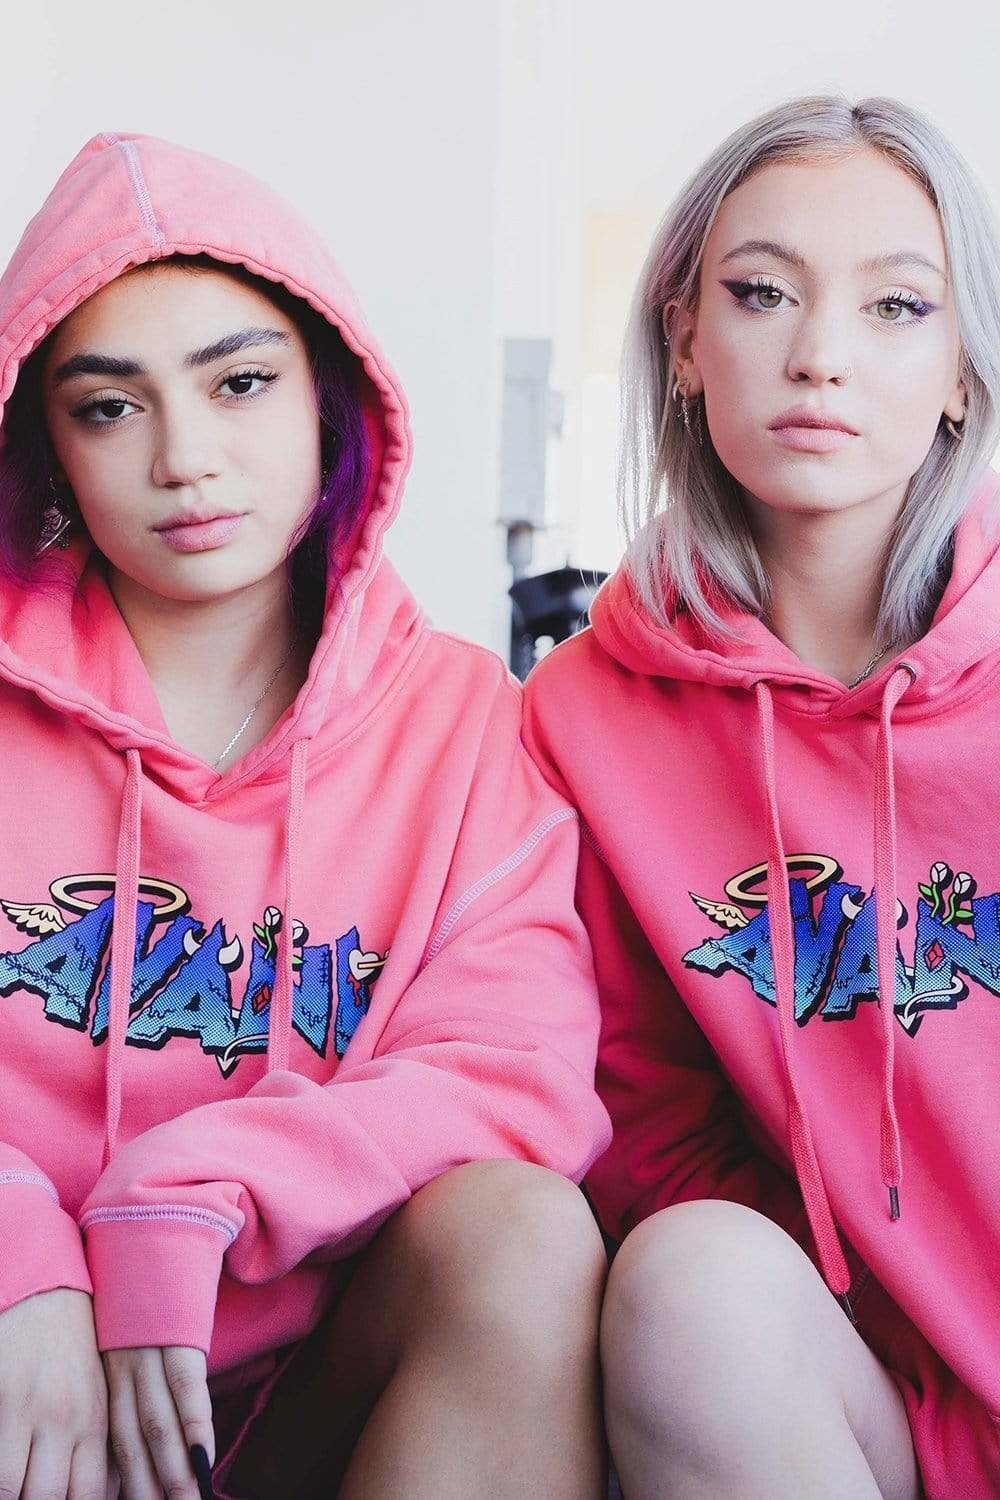 Avani and her friend wear pink hoodies that say her name on them